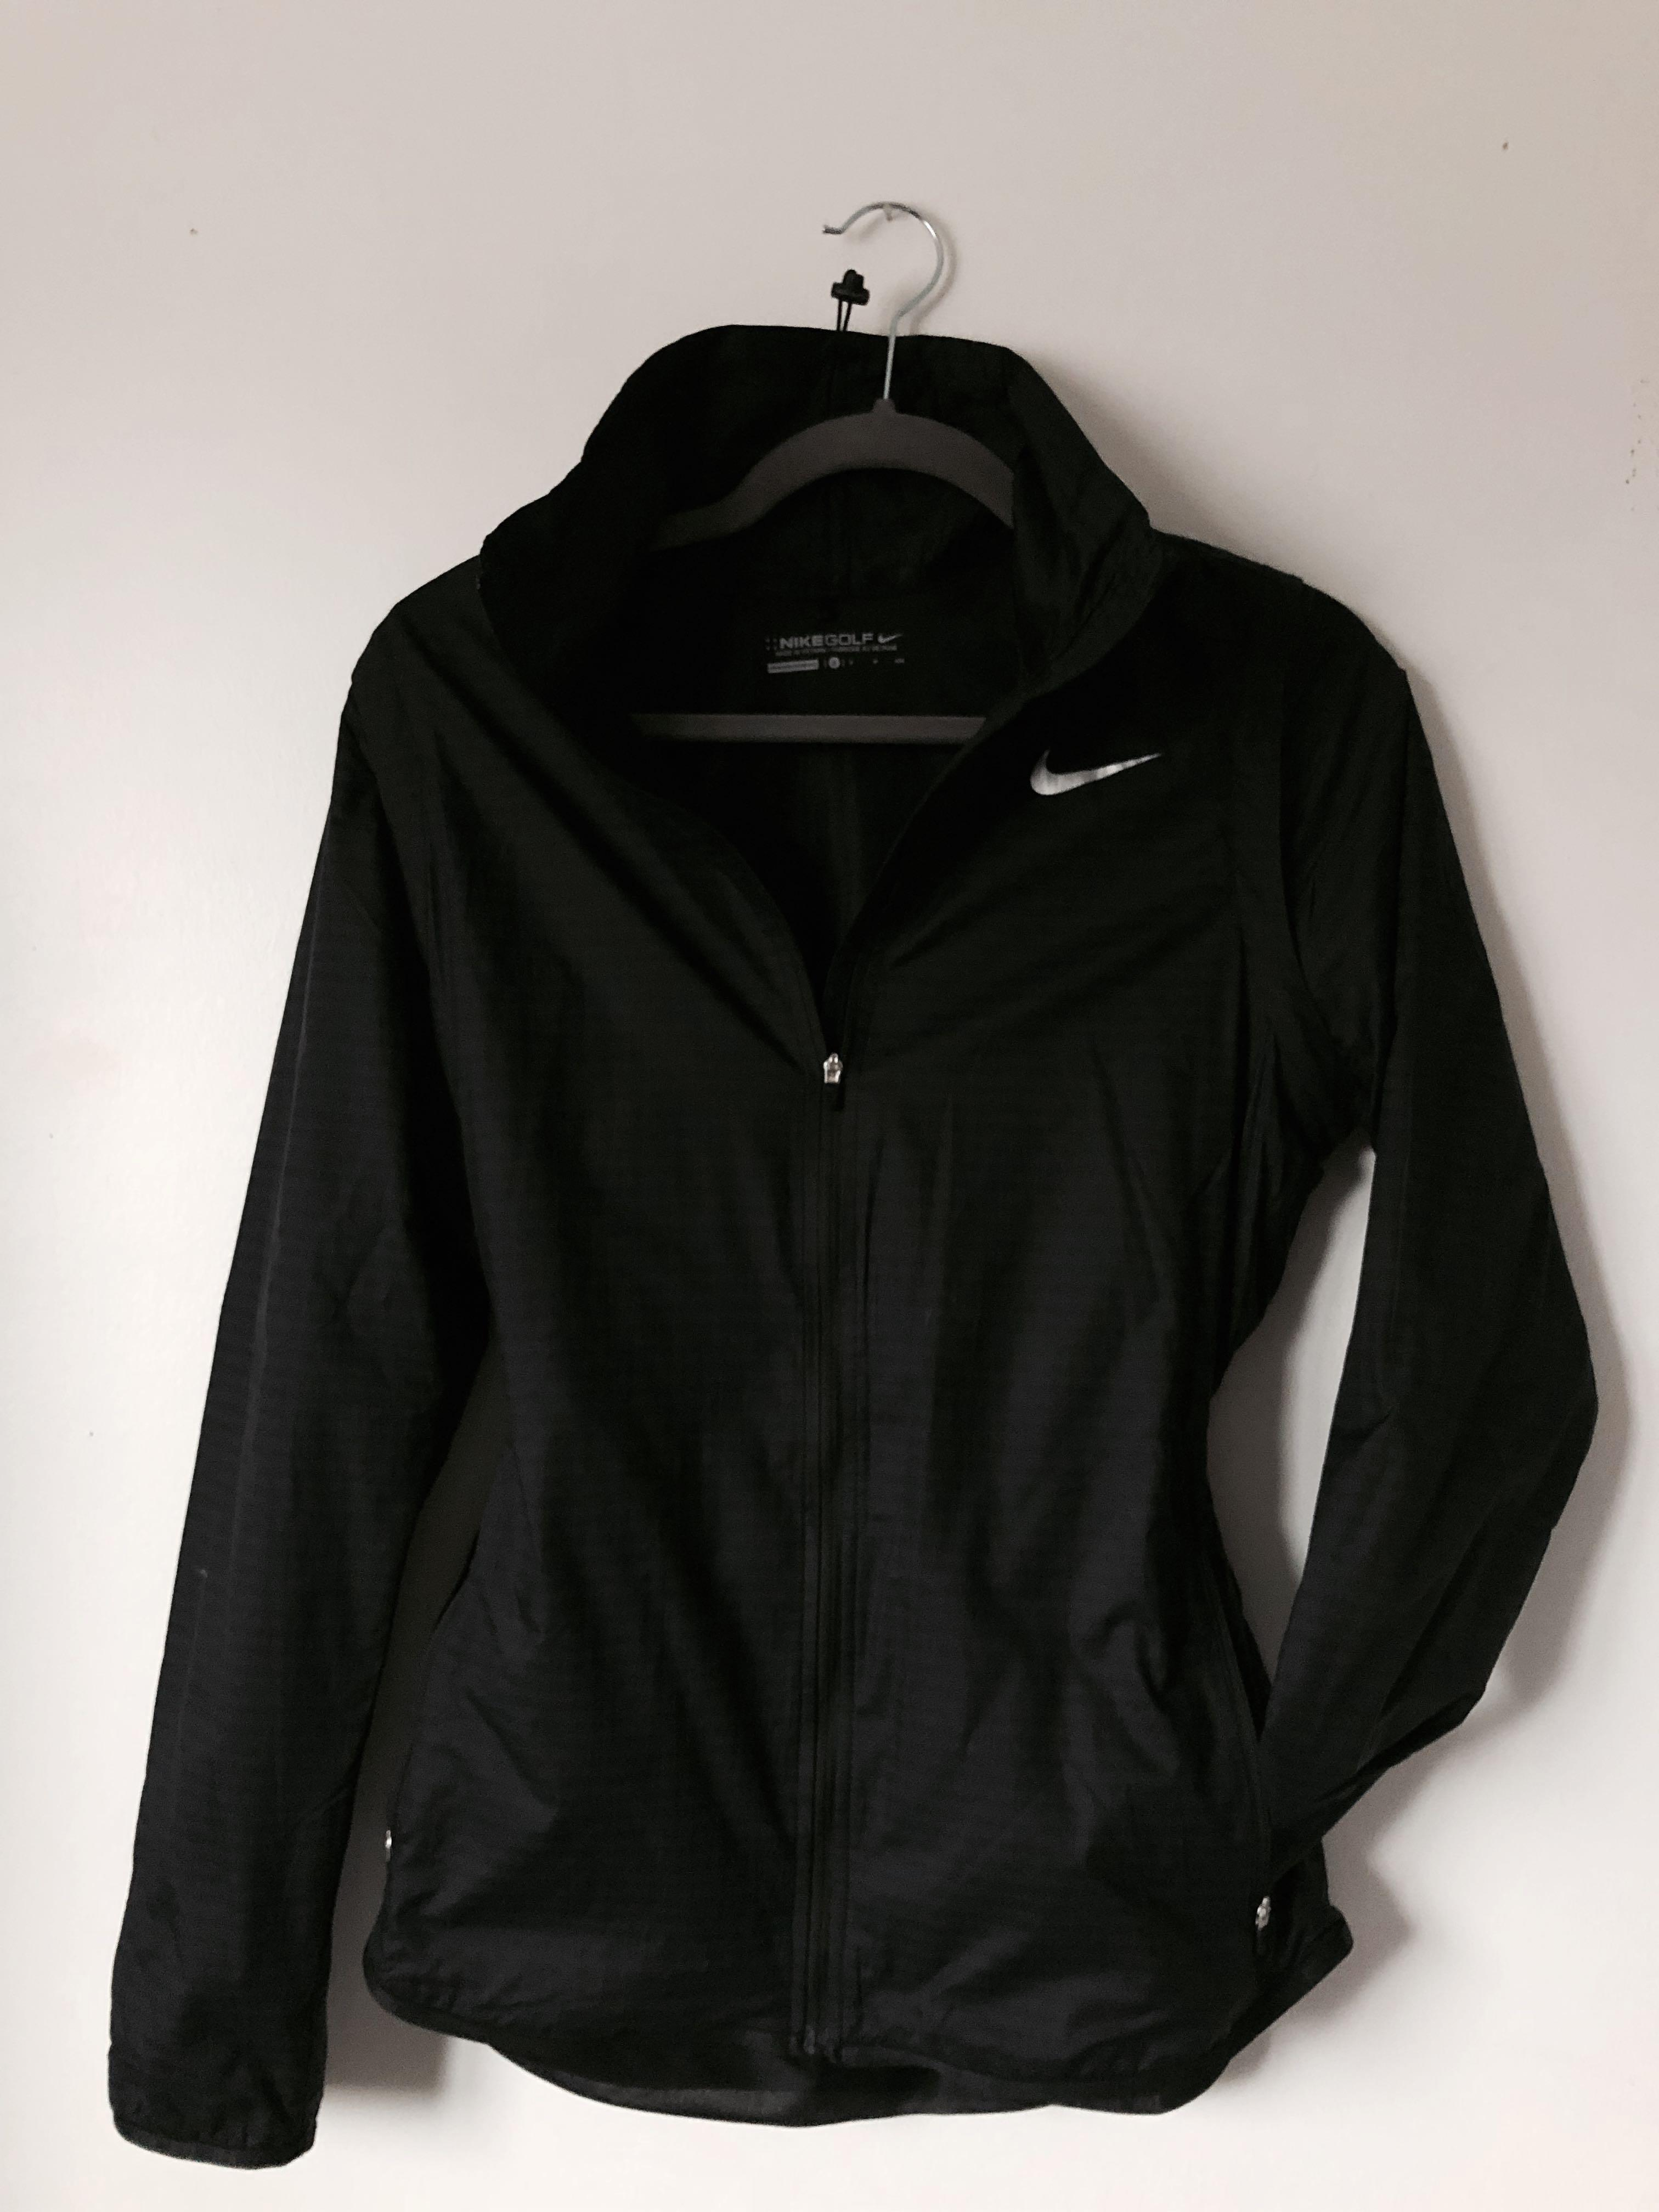 Nike Windbreaker w/ Removable Sleeves (size small)